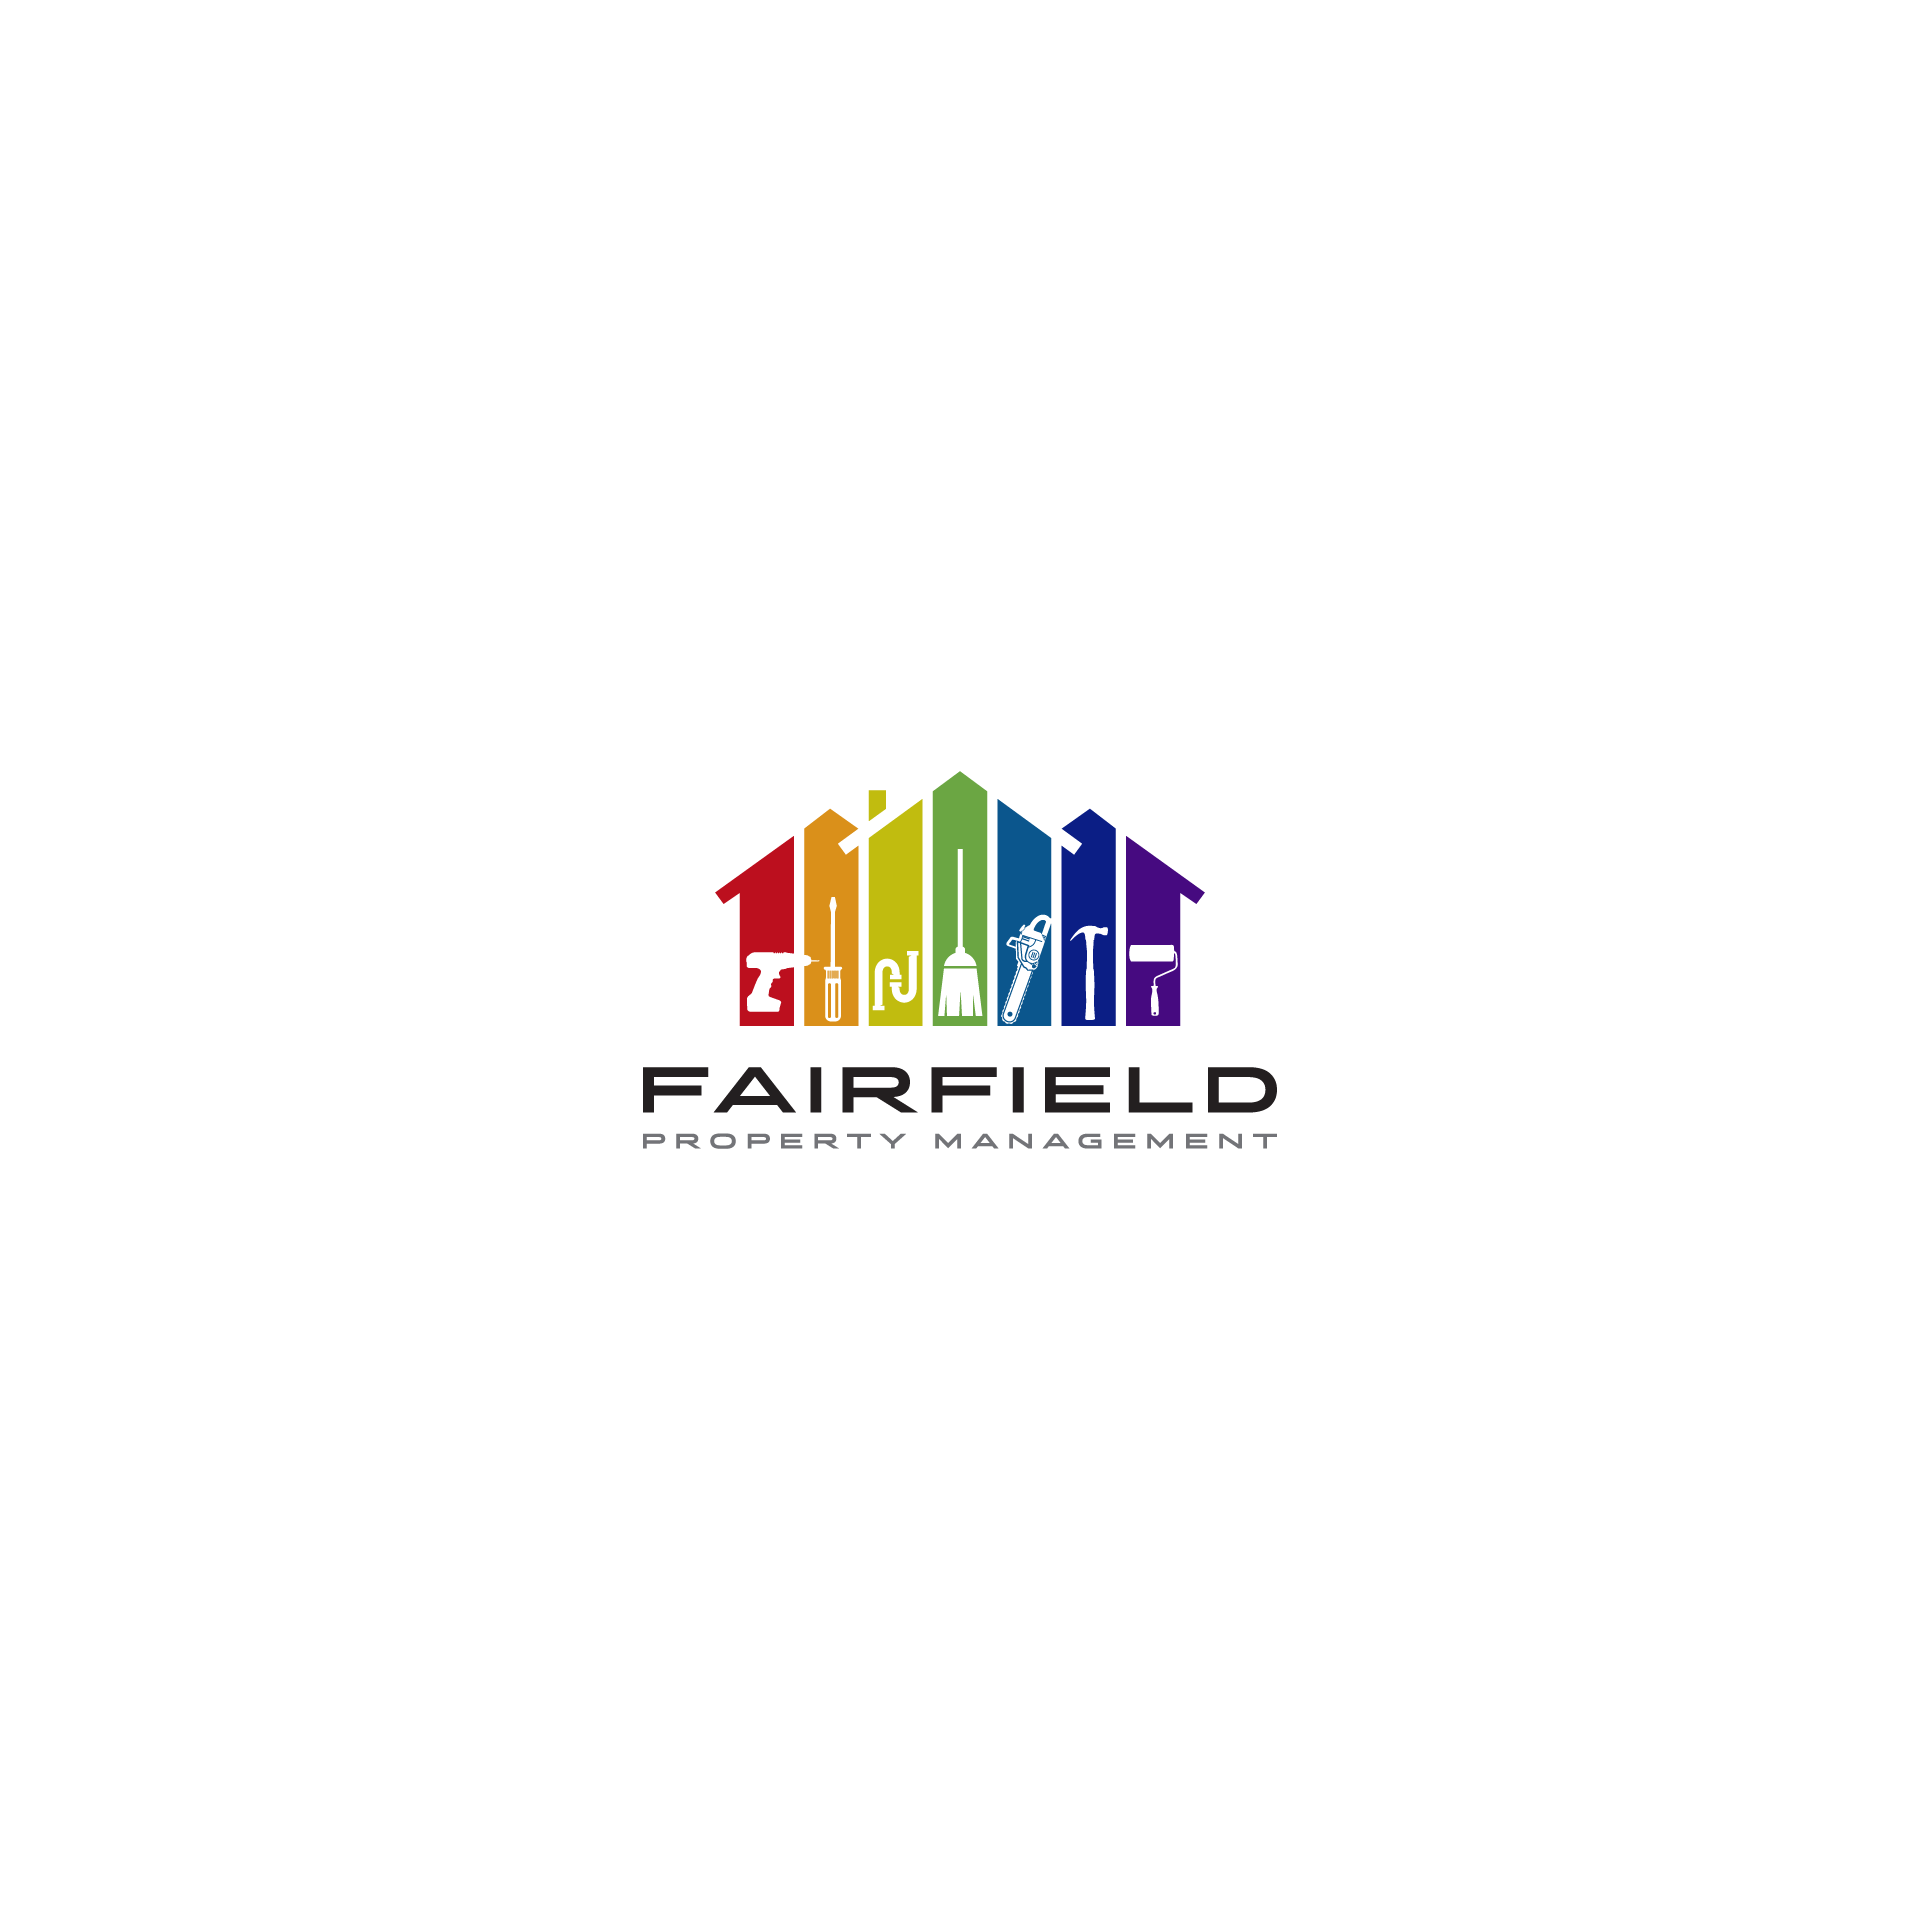 Logo for high service property mgmt company in highly touristed mountain resort area